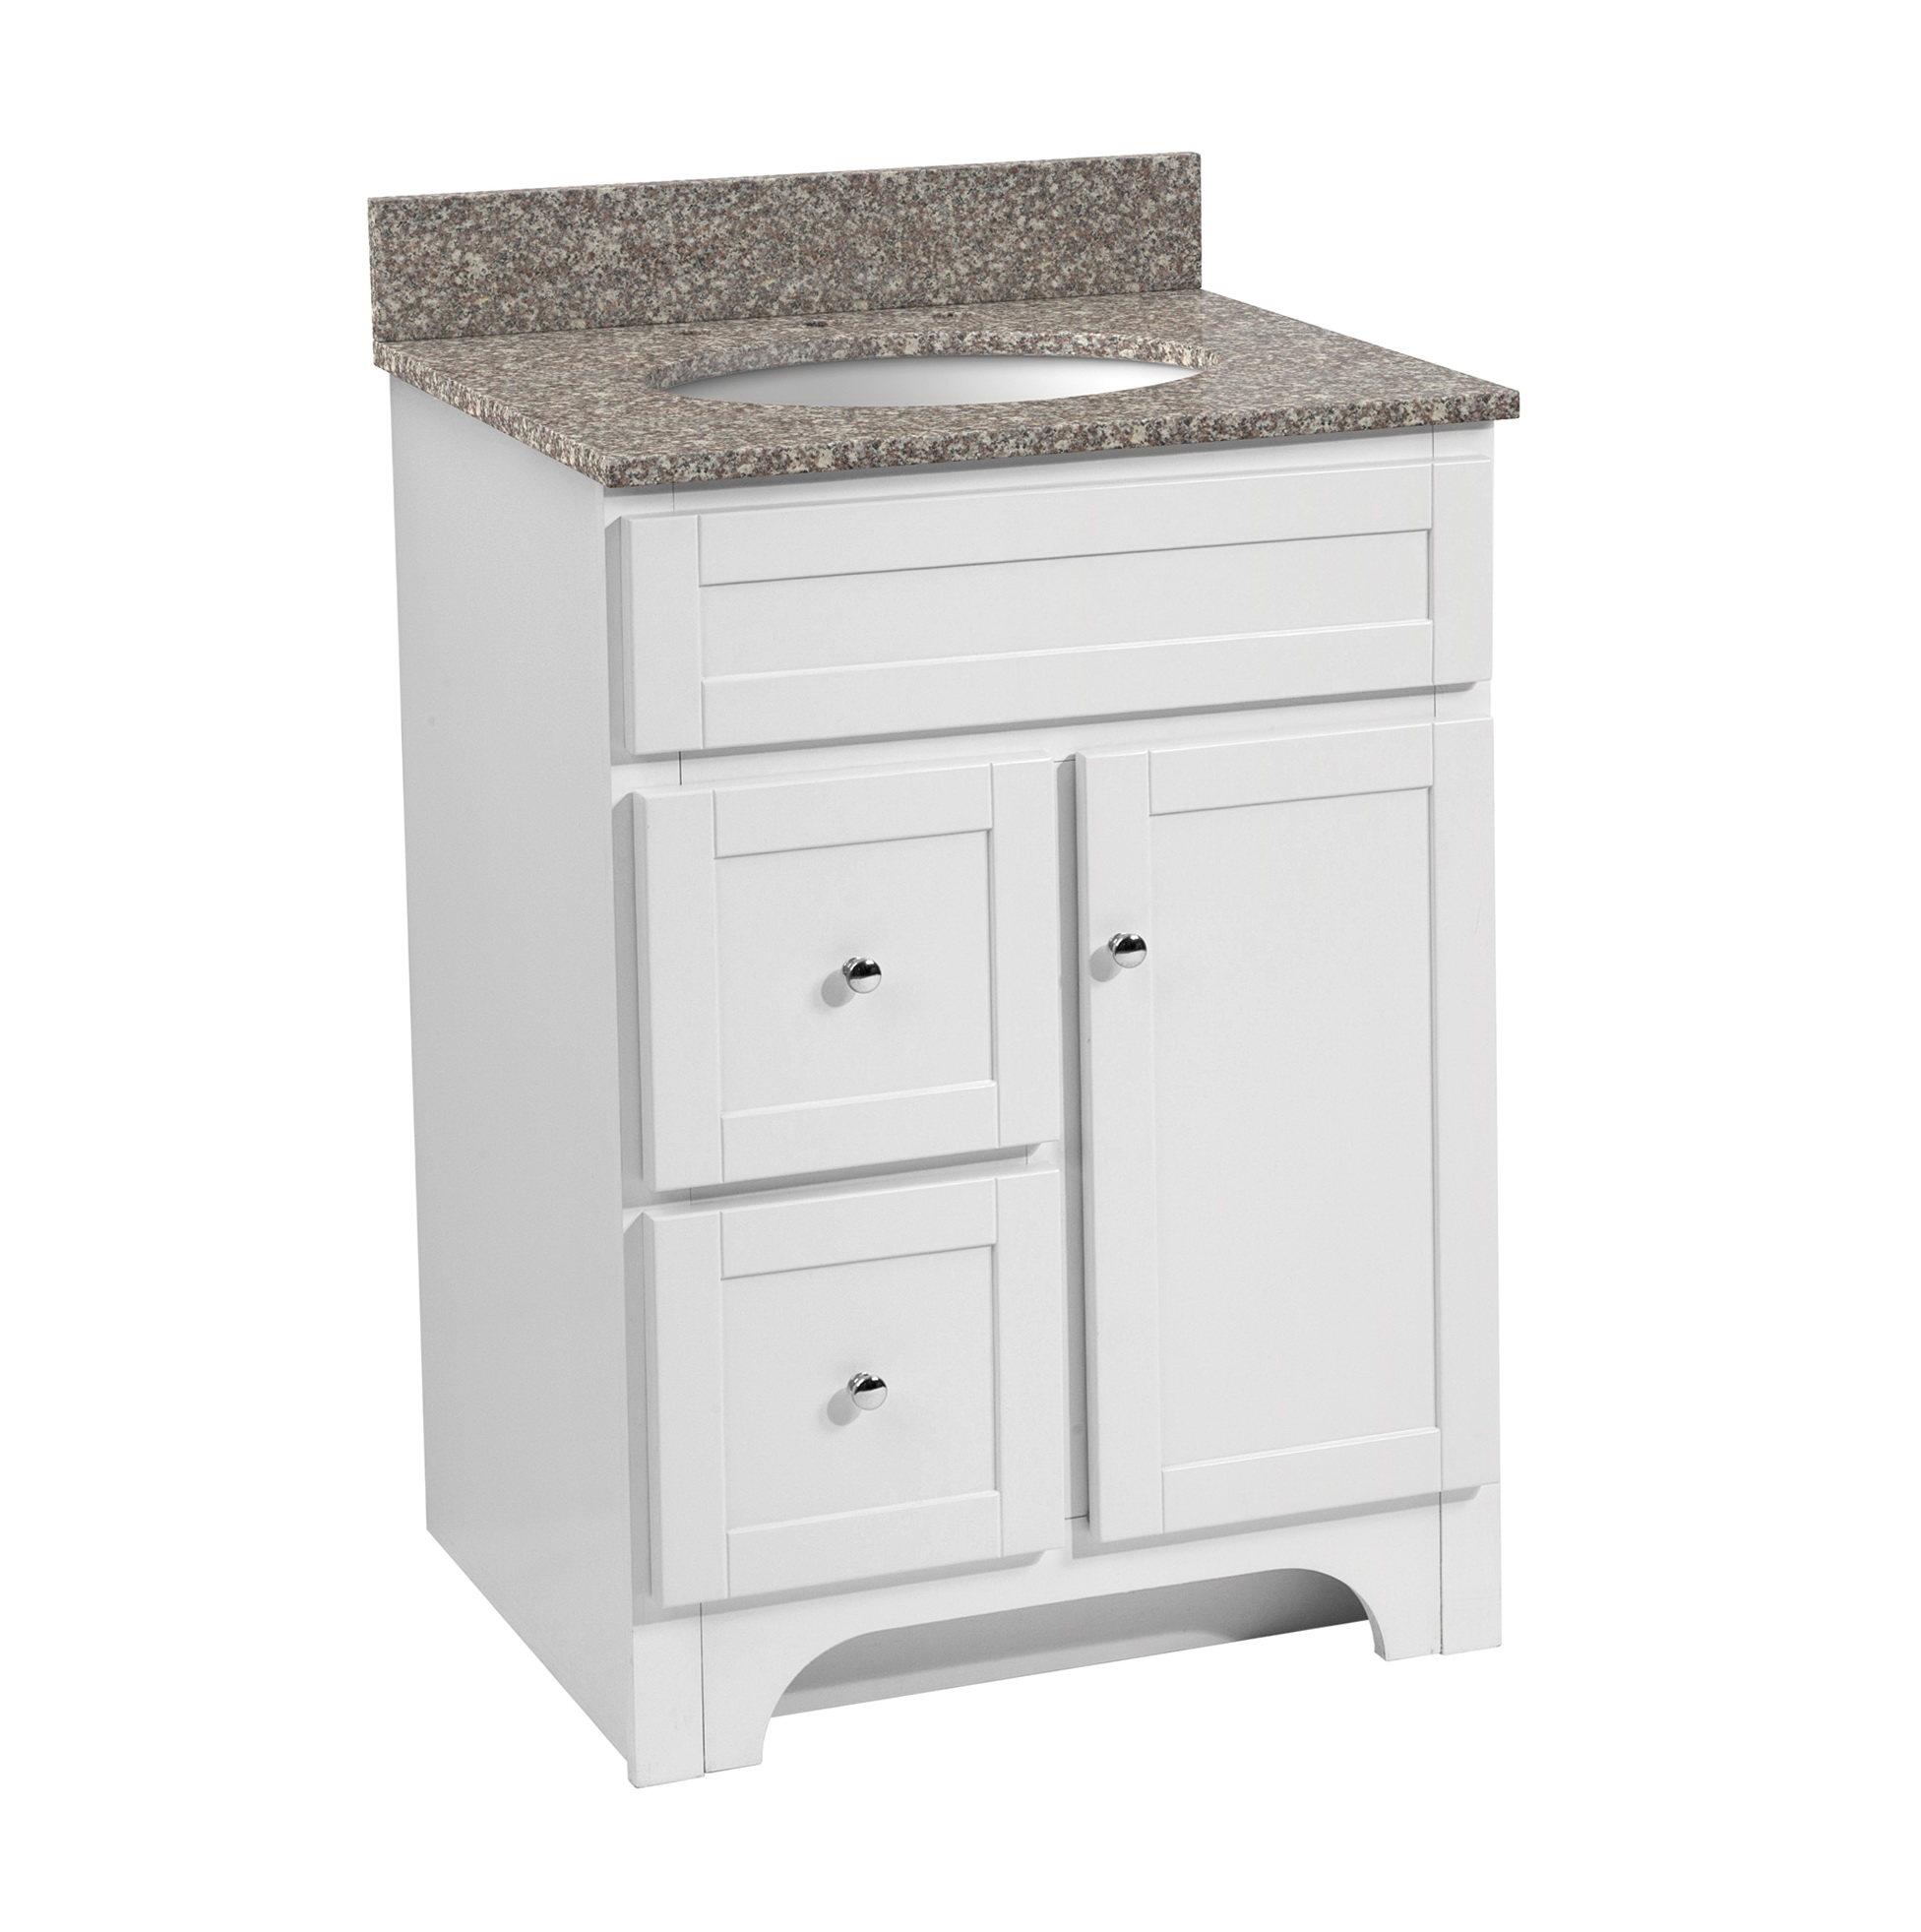 24 Inch Bathroom Vanity With Drawers